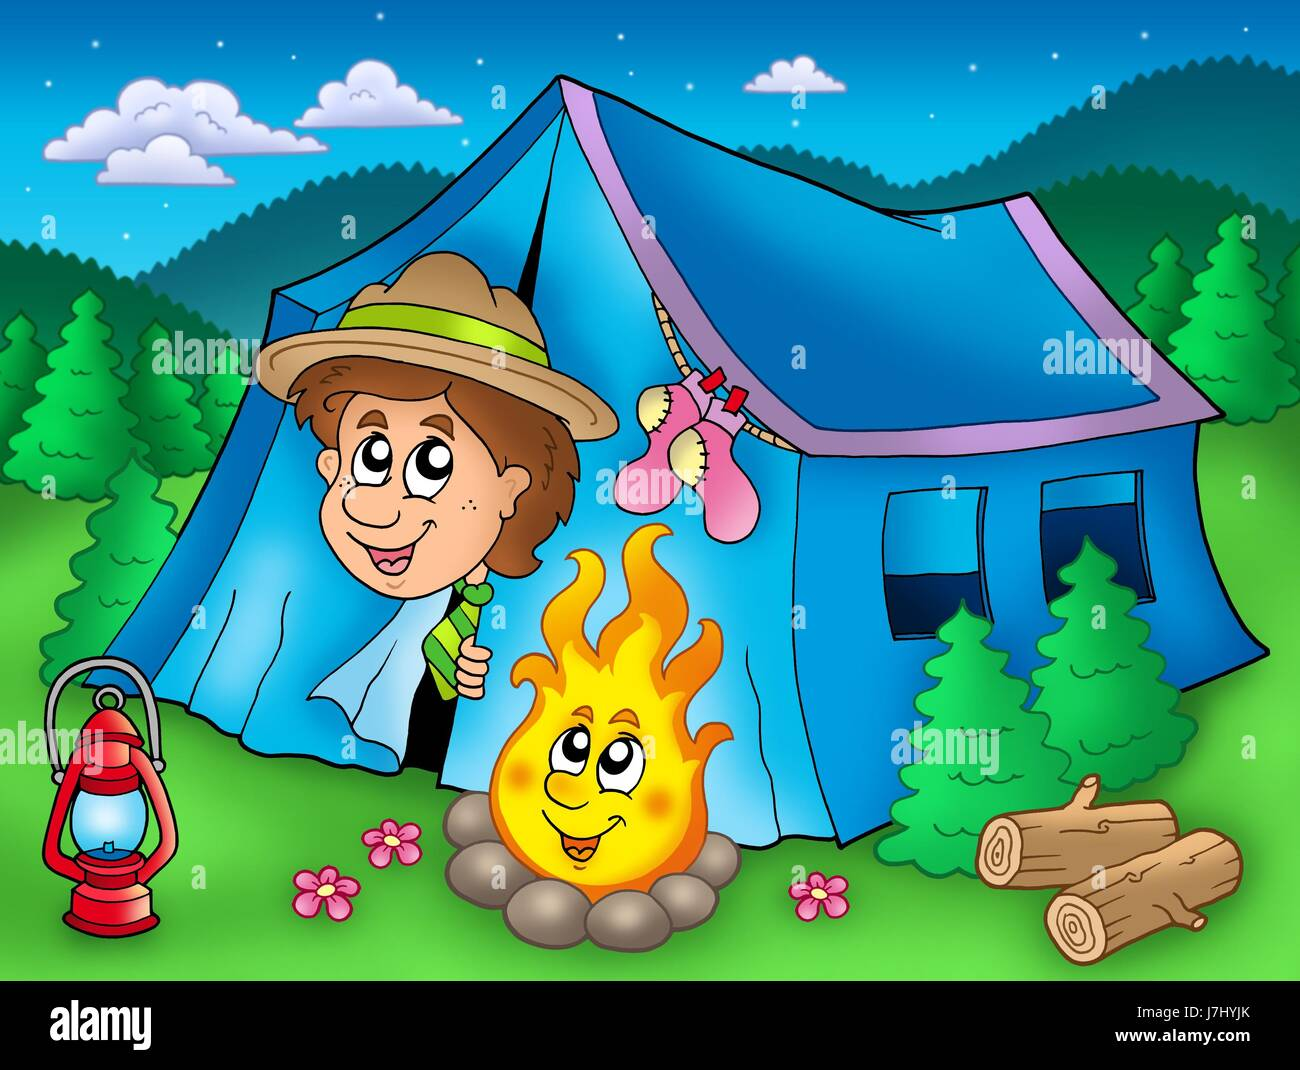 c&ing tent c& scout c& of tents scouts humans human beings people folk  sc 1 st  Alamy & camping tent camp scout camp of tents scouts humans human beings ...